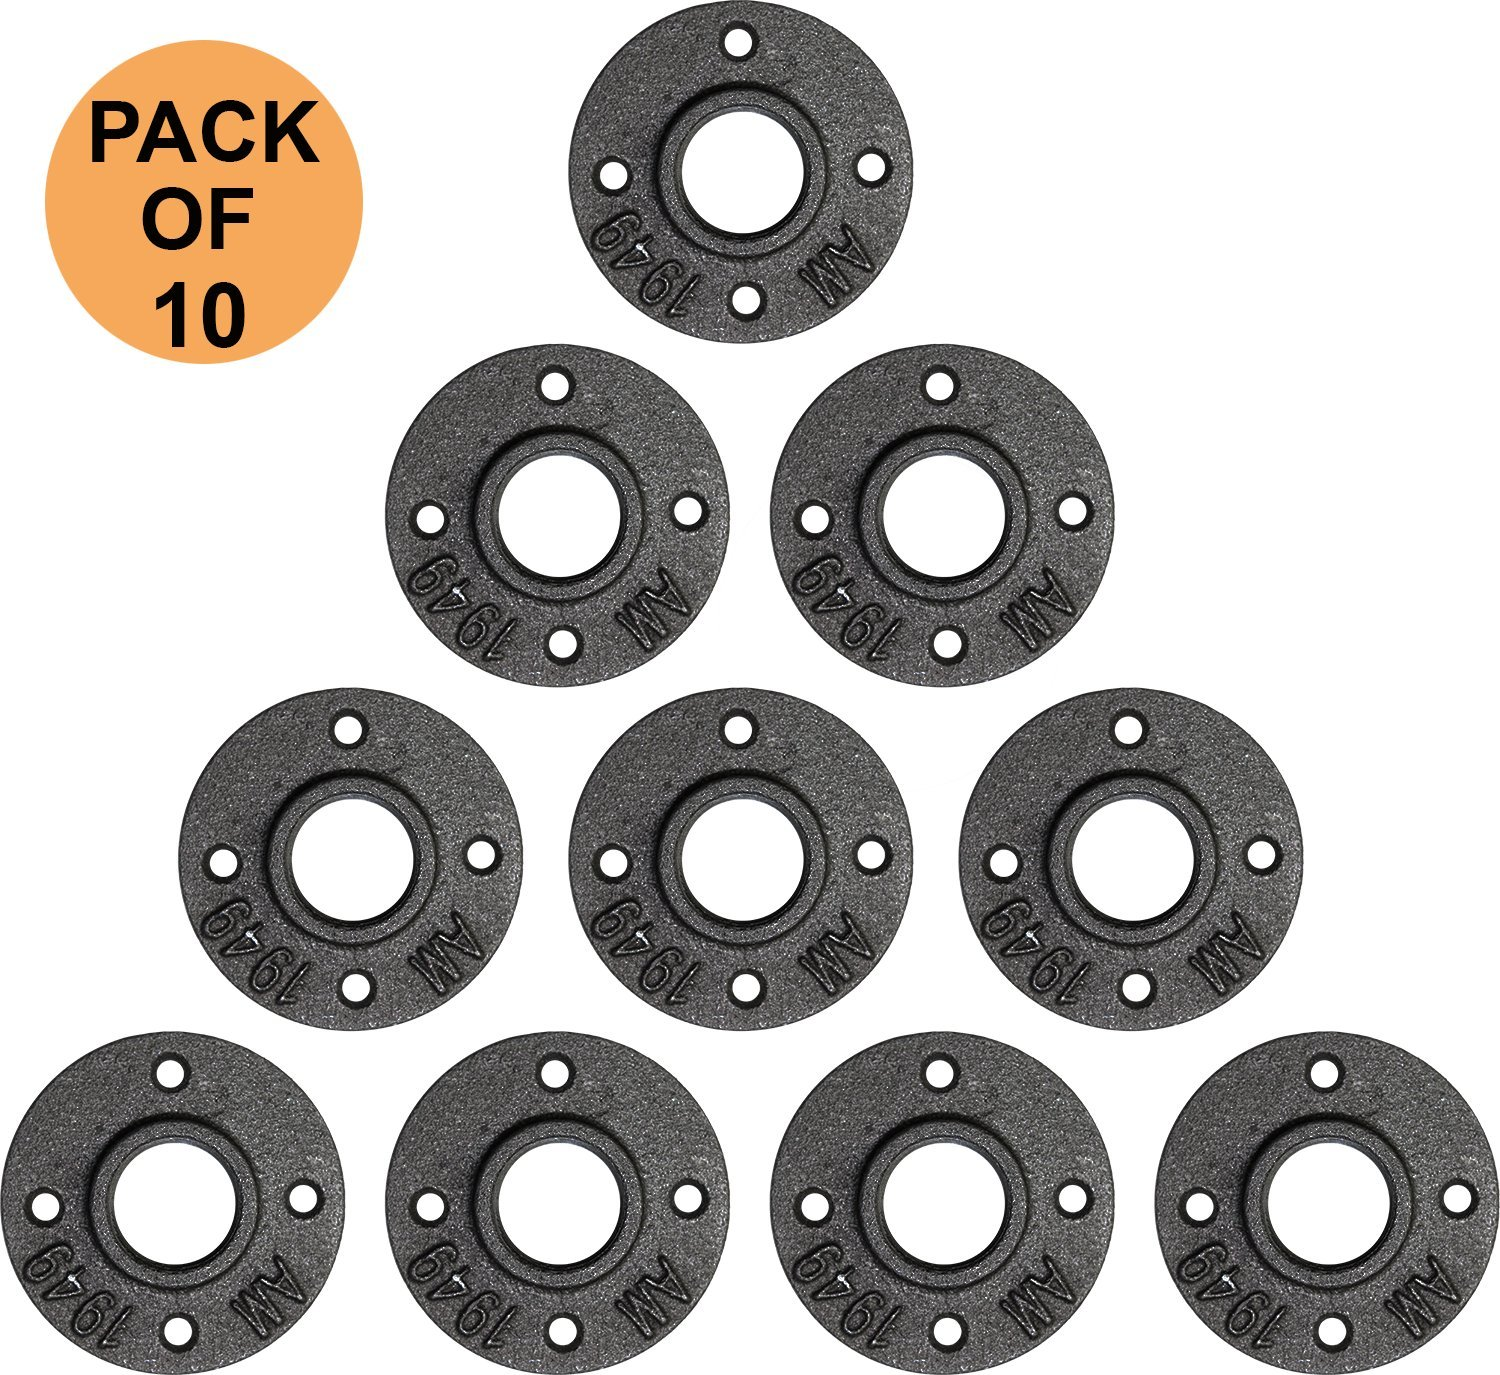 1''inch Flange Black Malleable Iron Floor Pipe Fittings for Industrial Pipe Furniture & DIY Décor [ Pack of 10]